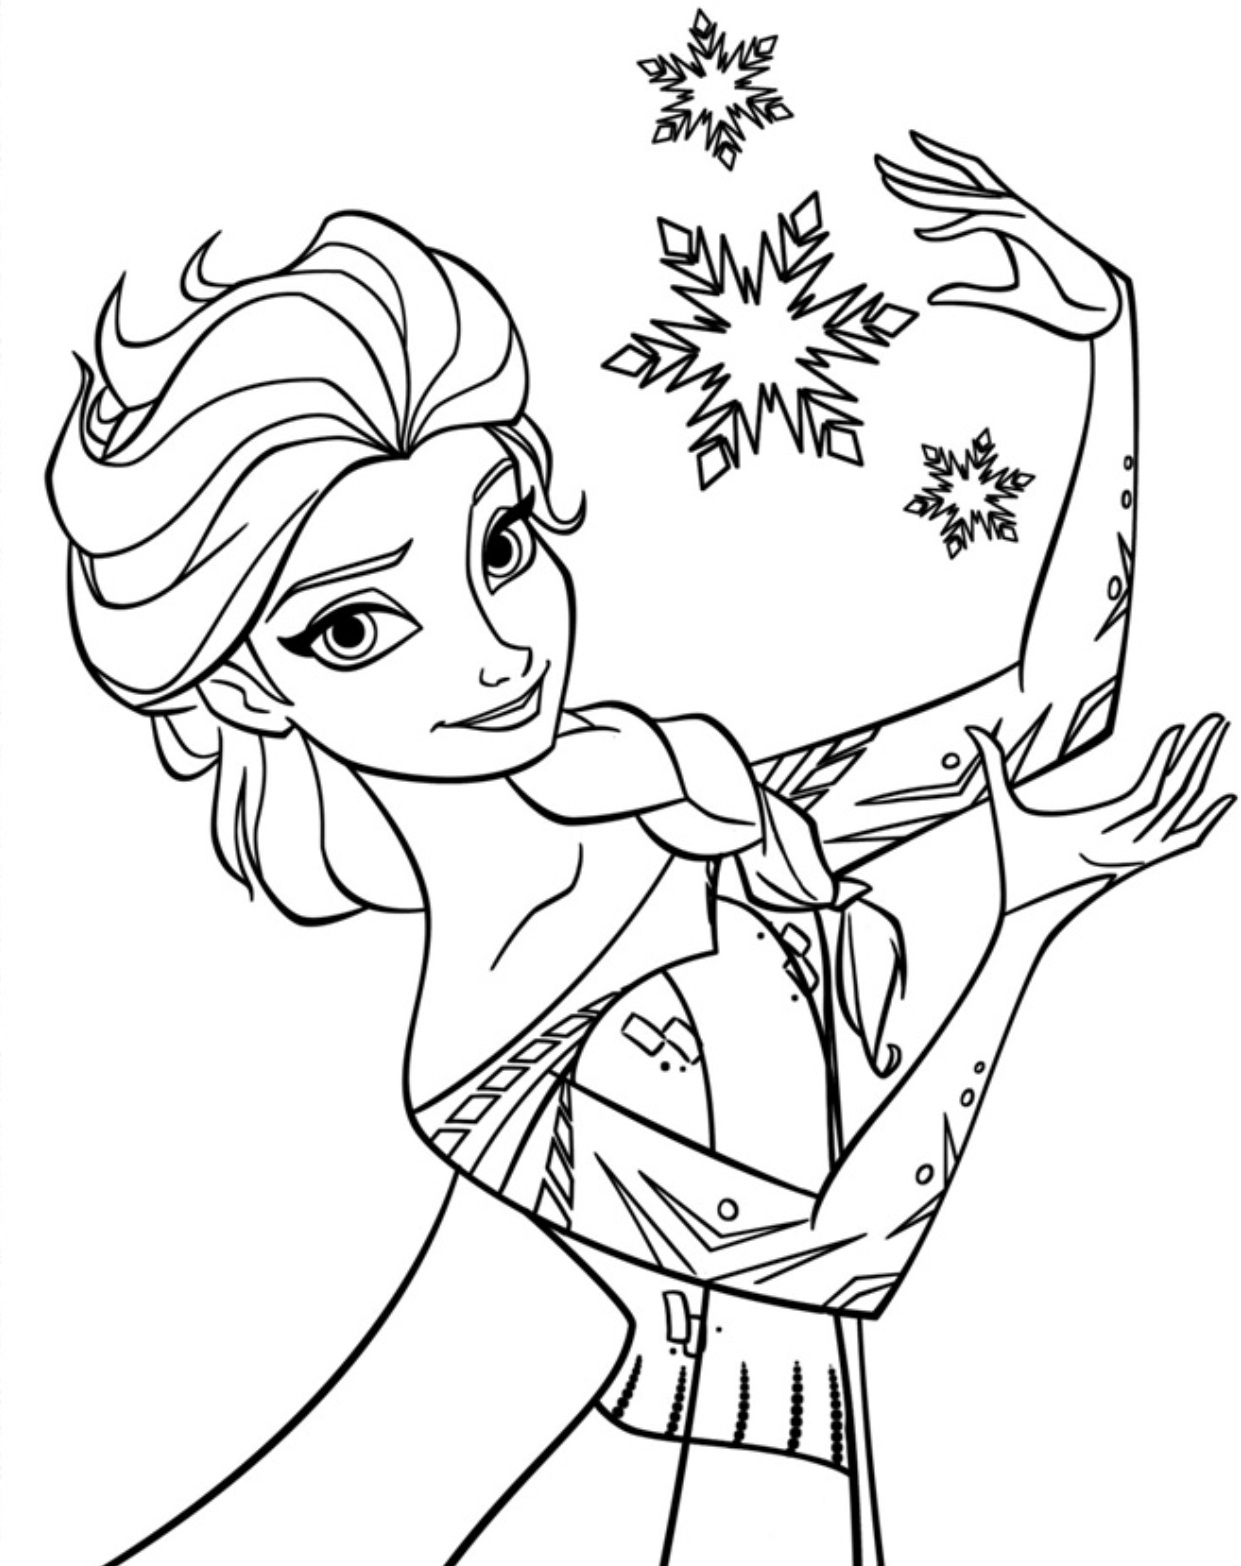 coloring sheets kids coloring pages for kids by kids art starts coloring sheets kids